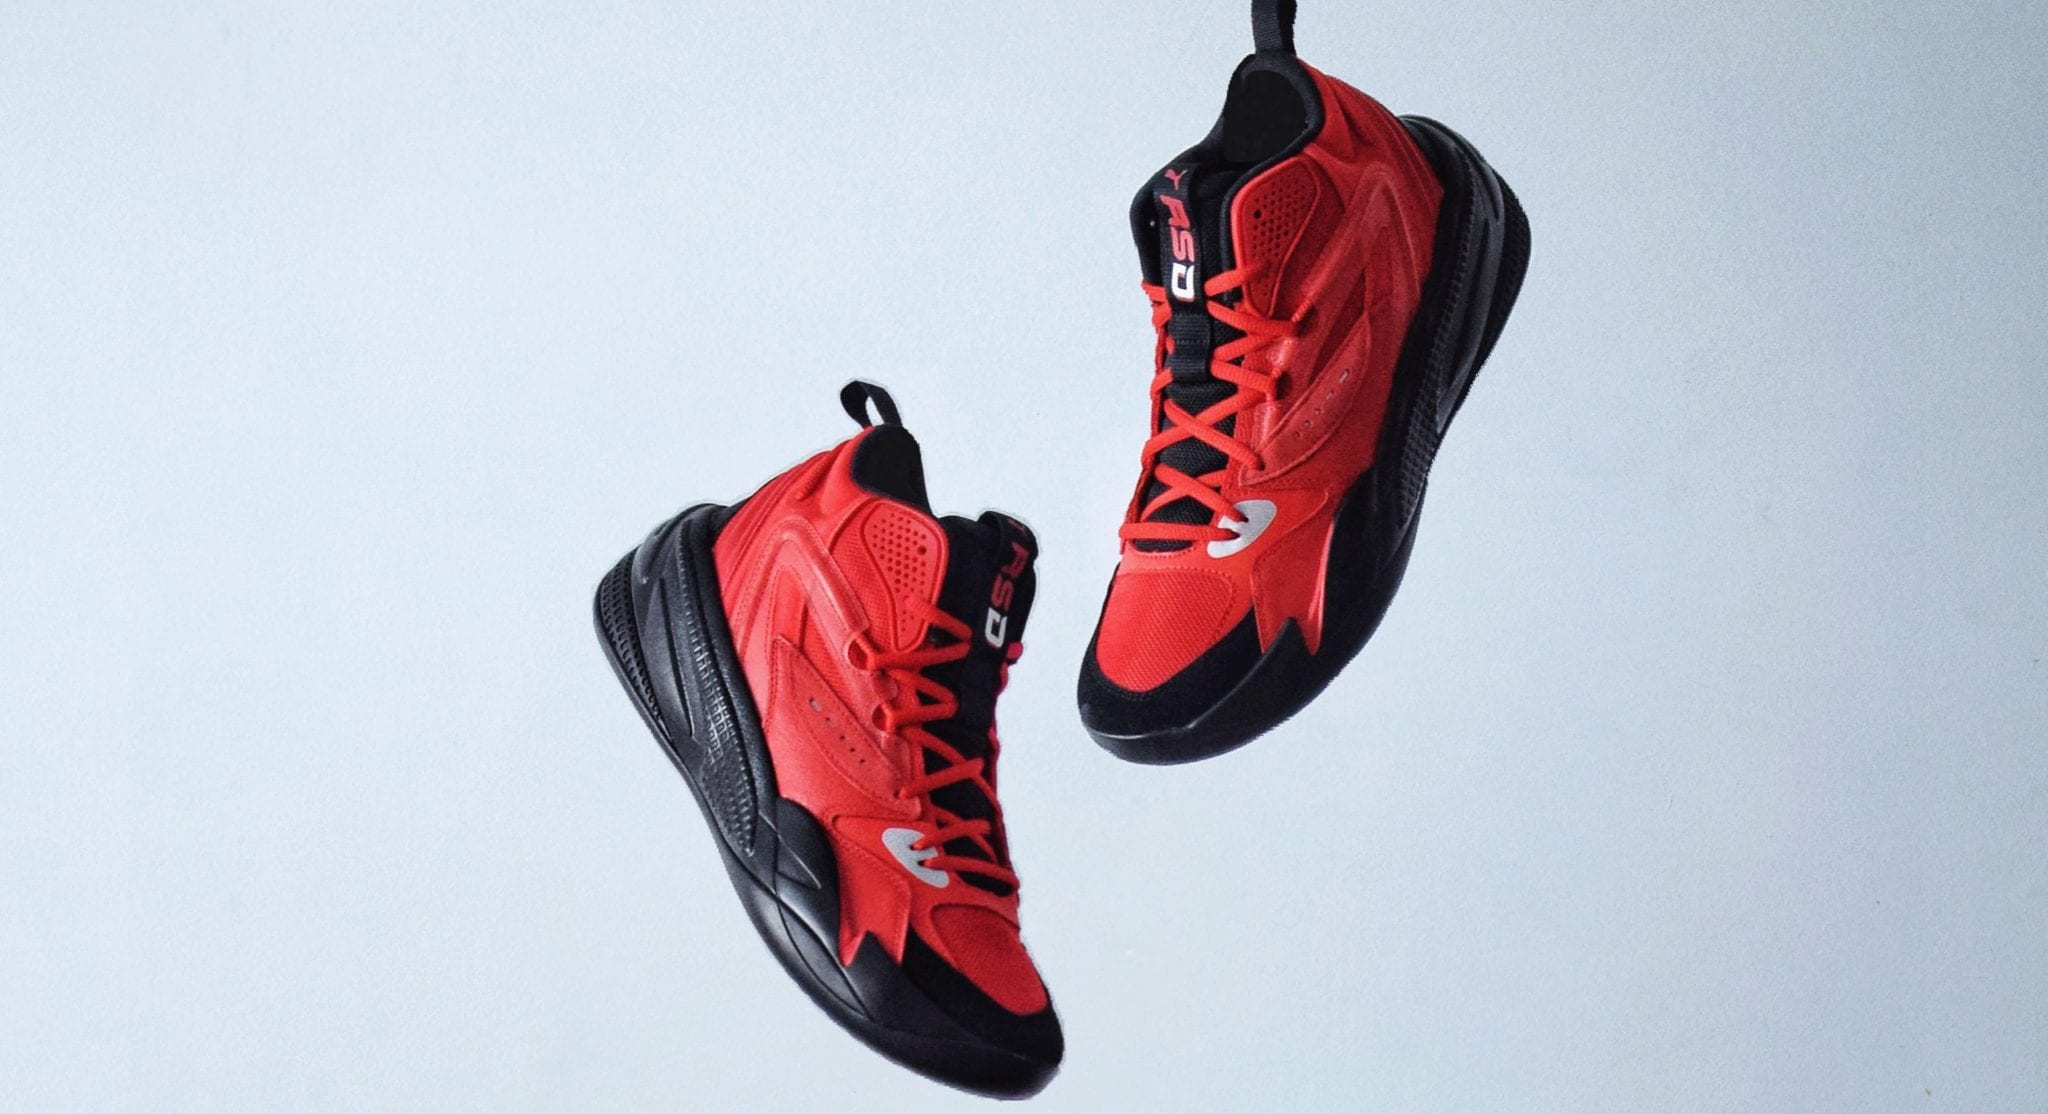 """PUMA Drops DREAMER 2 """"Off-Season"""" Red Inspired By J. Cole's New Album"""